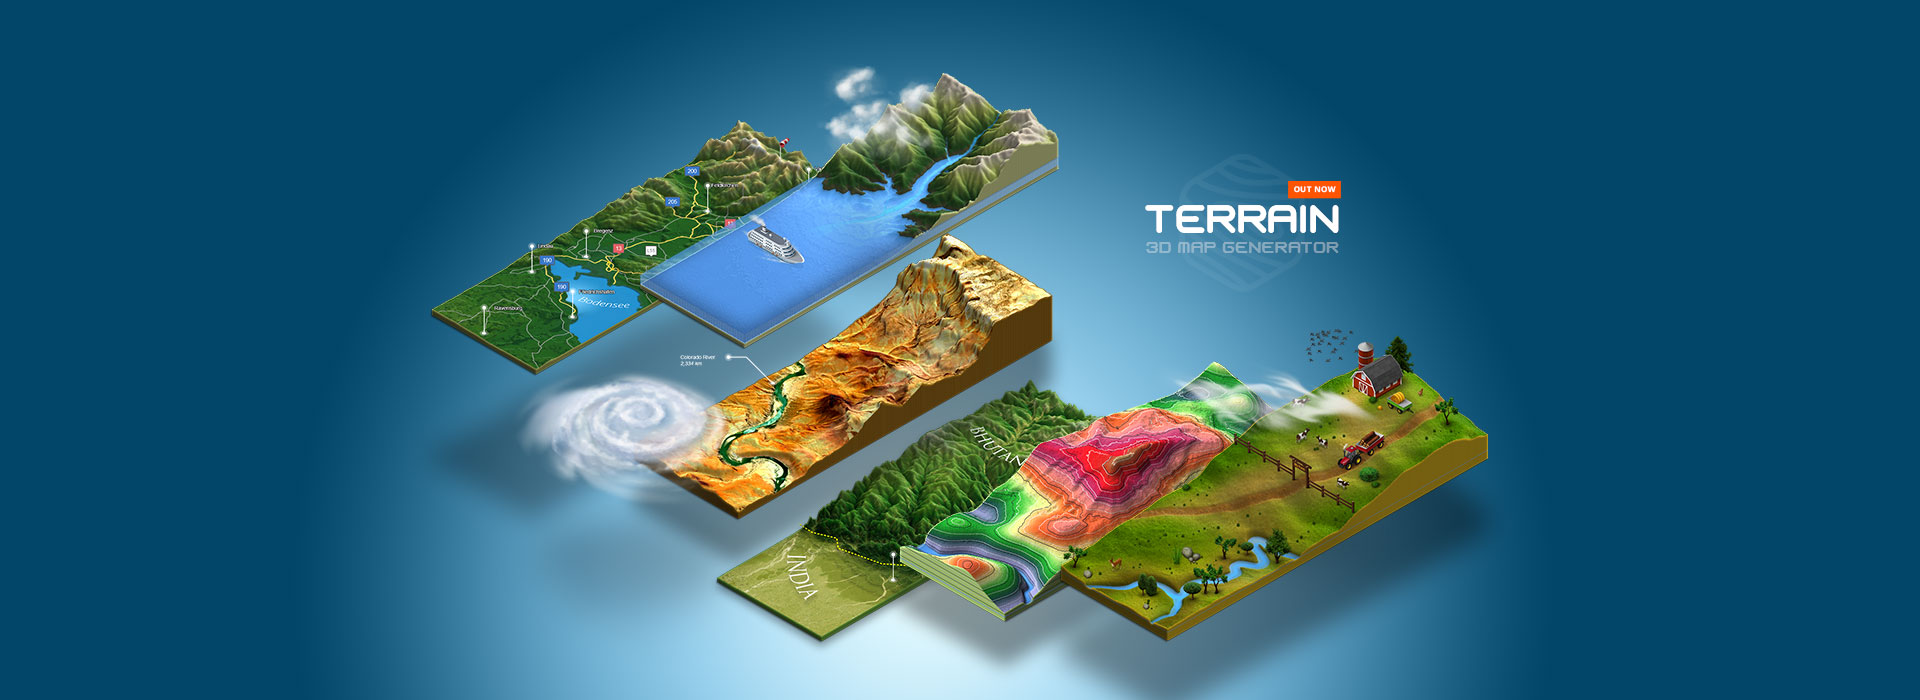 3d map generator 3d map generator 3d map your ideas 3d map generator terrain gumiabroncs Image collections